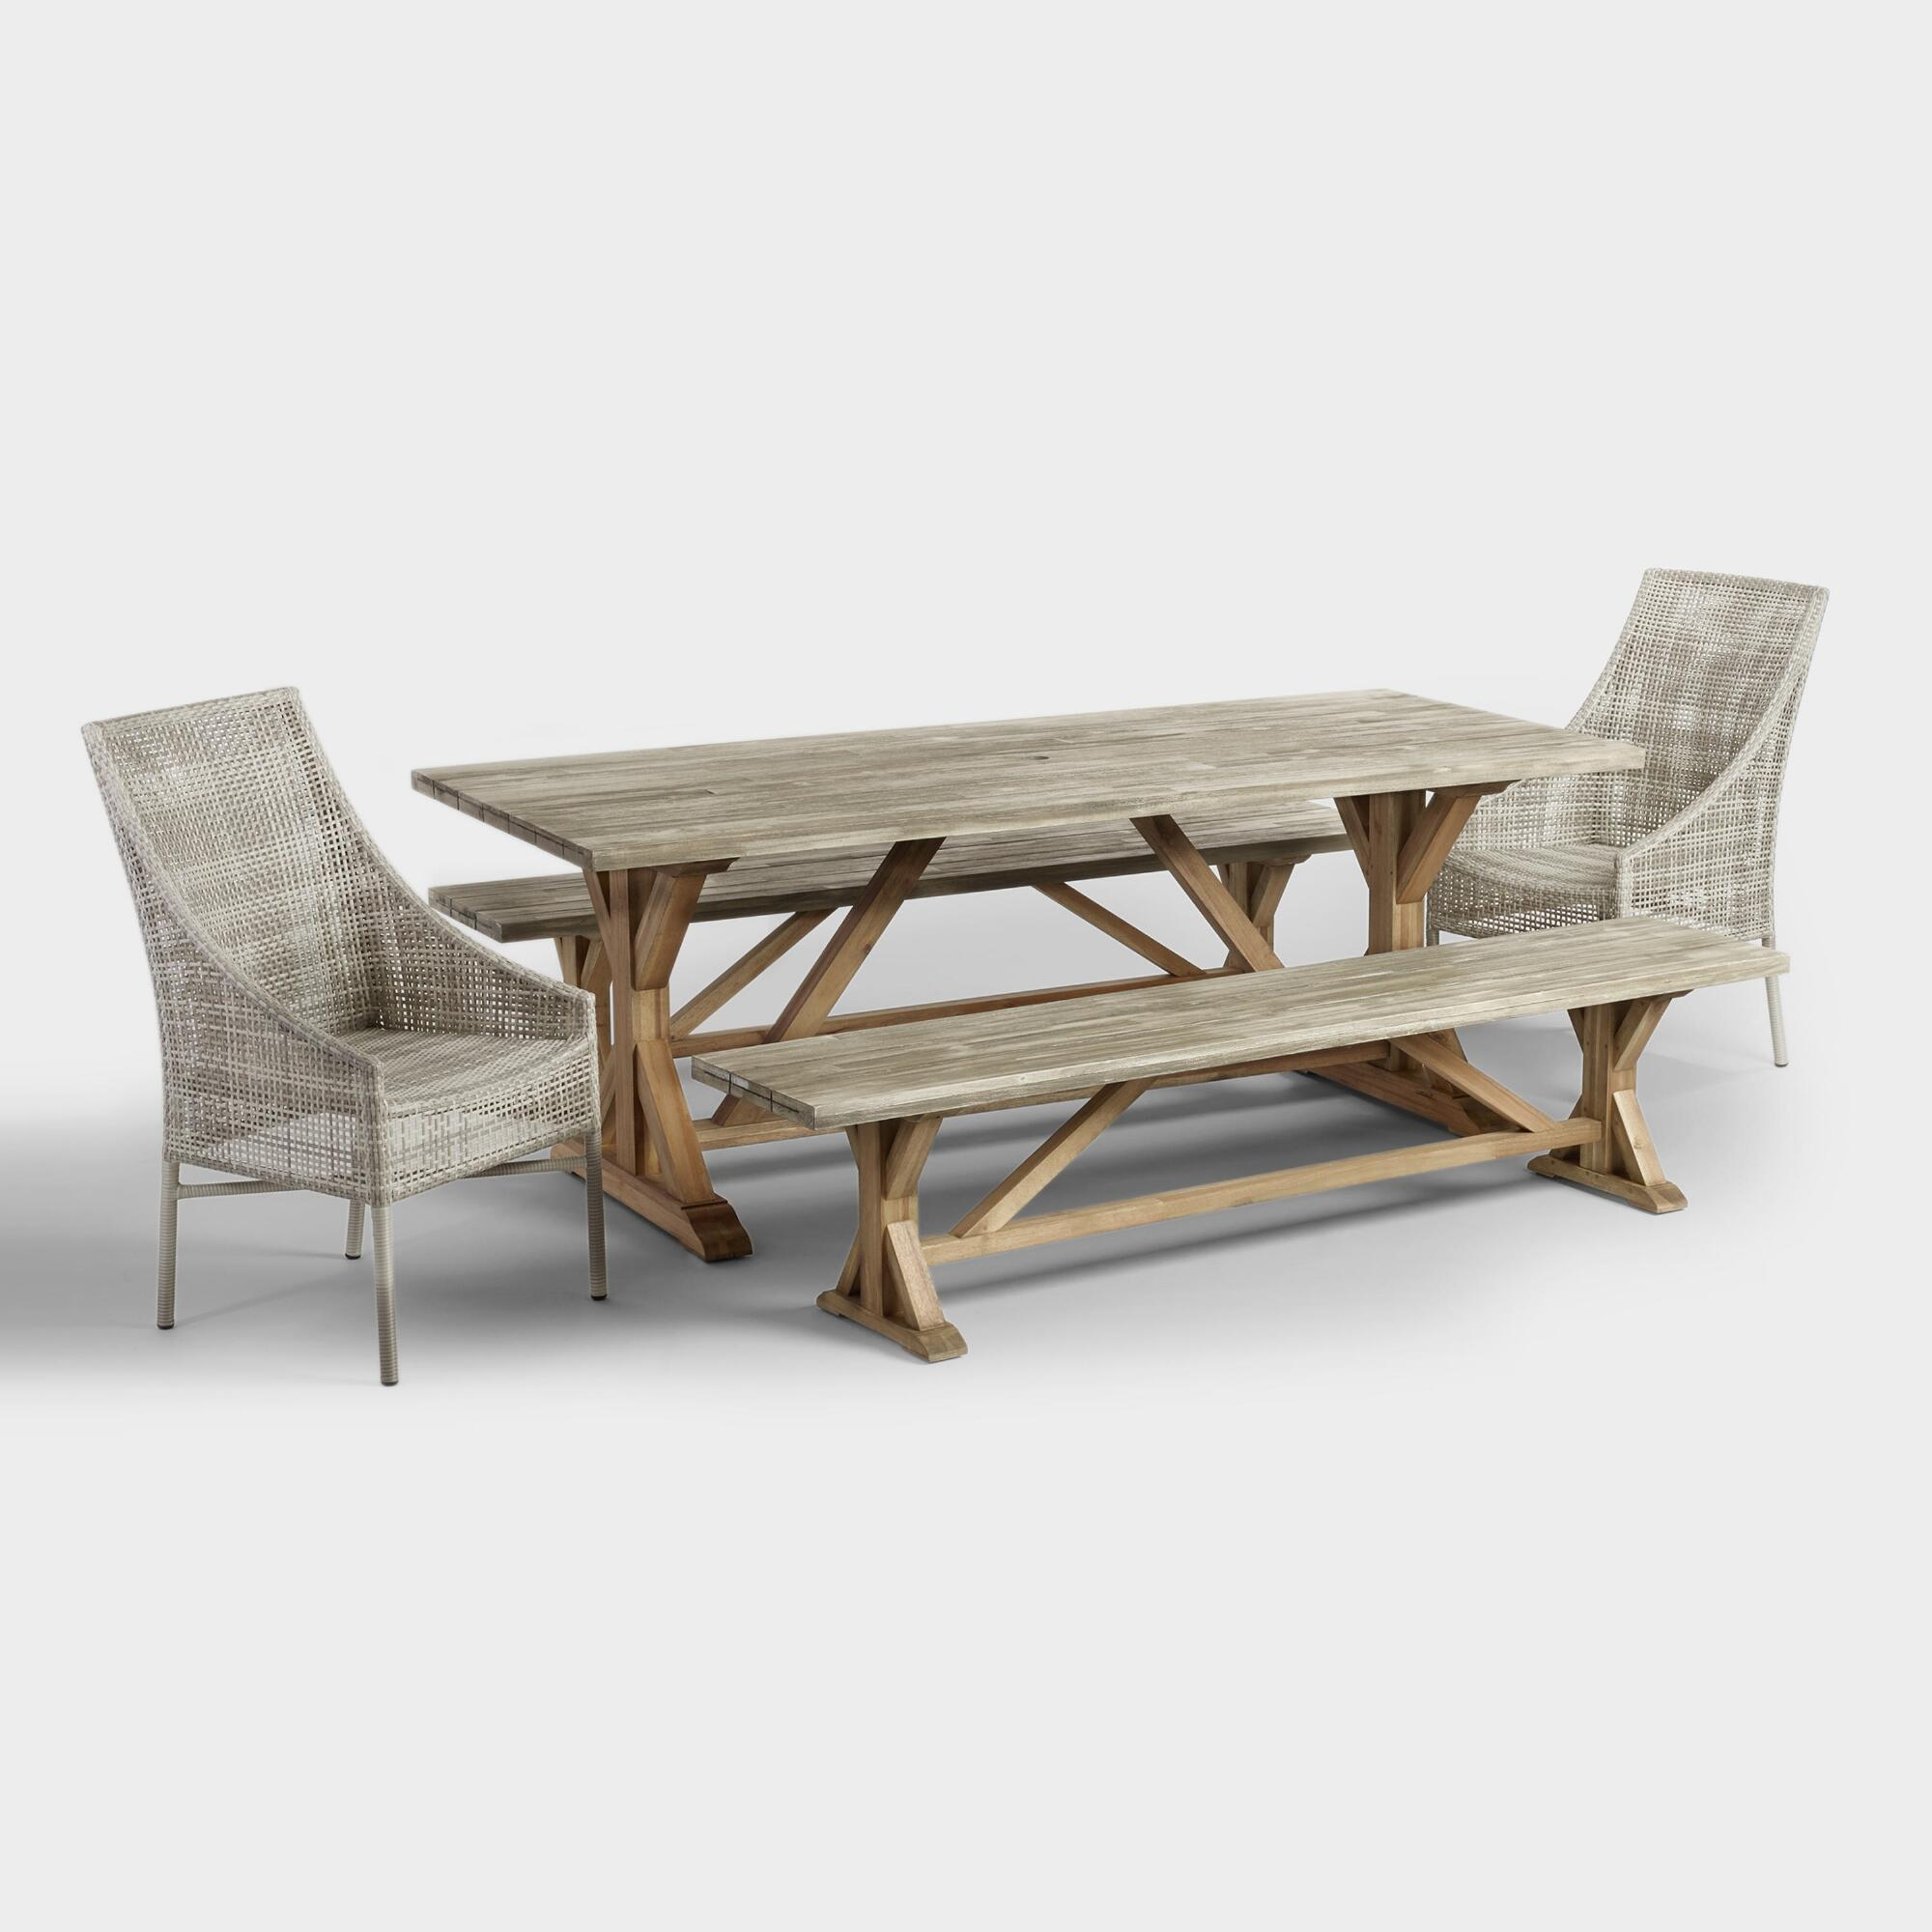 chairs beautiful antique banquet card dining tables wood folding japanese dark and furniture brilliant square chair rustic lowes foldable with desk out set low design indoor outindoor metal table for